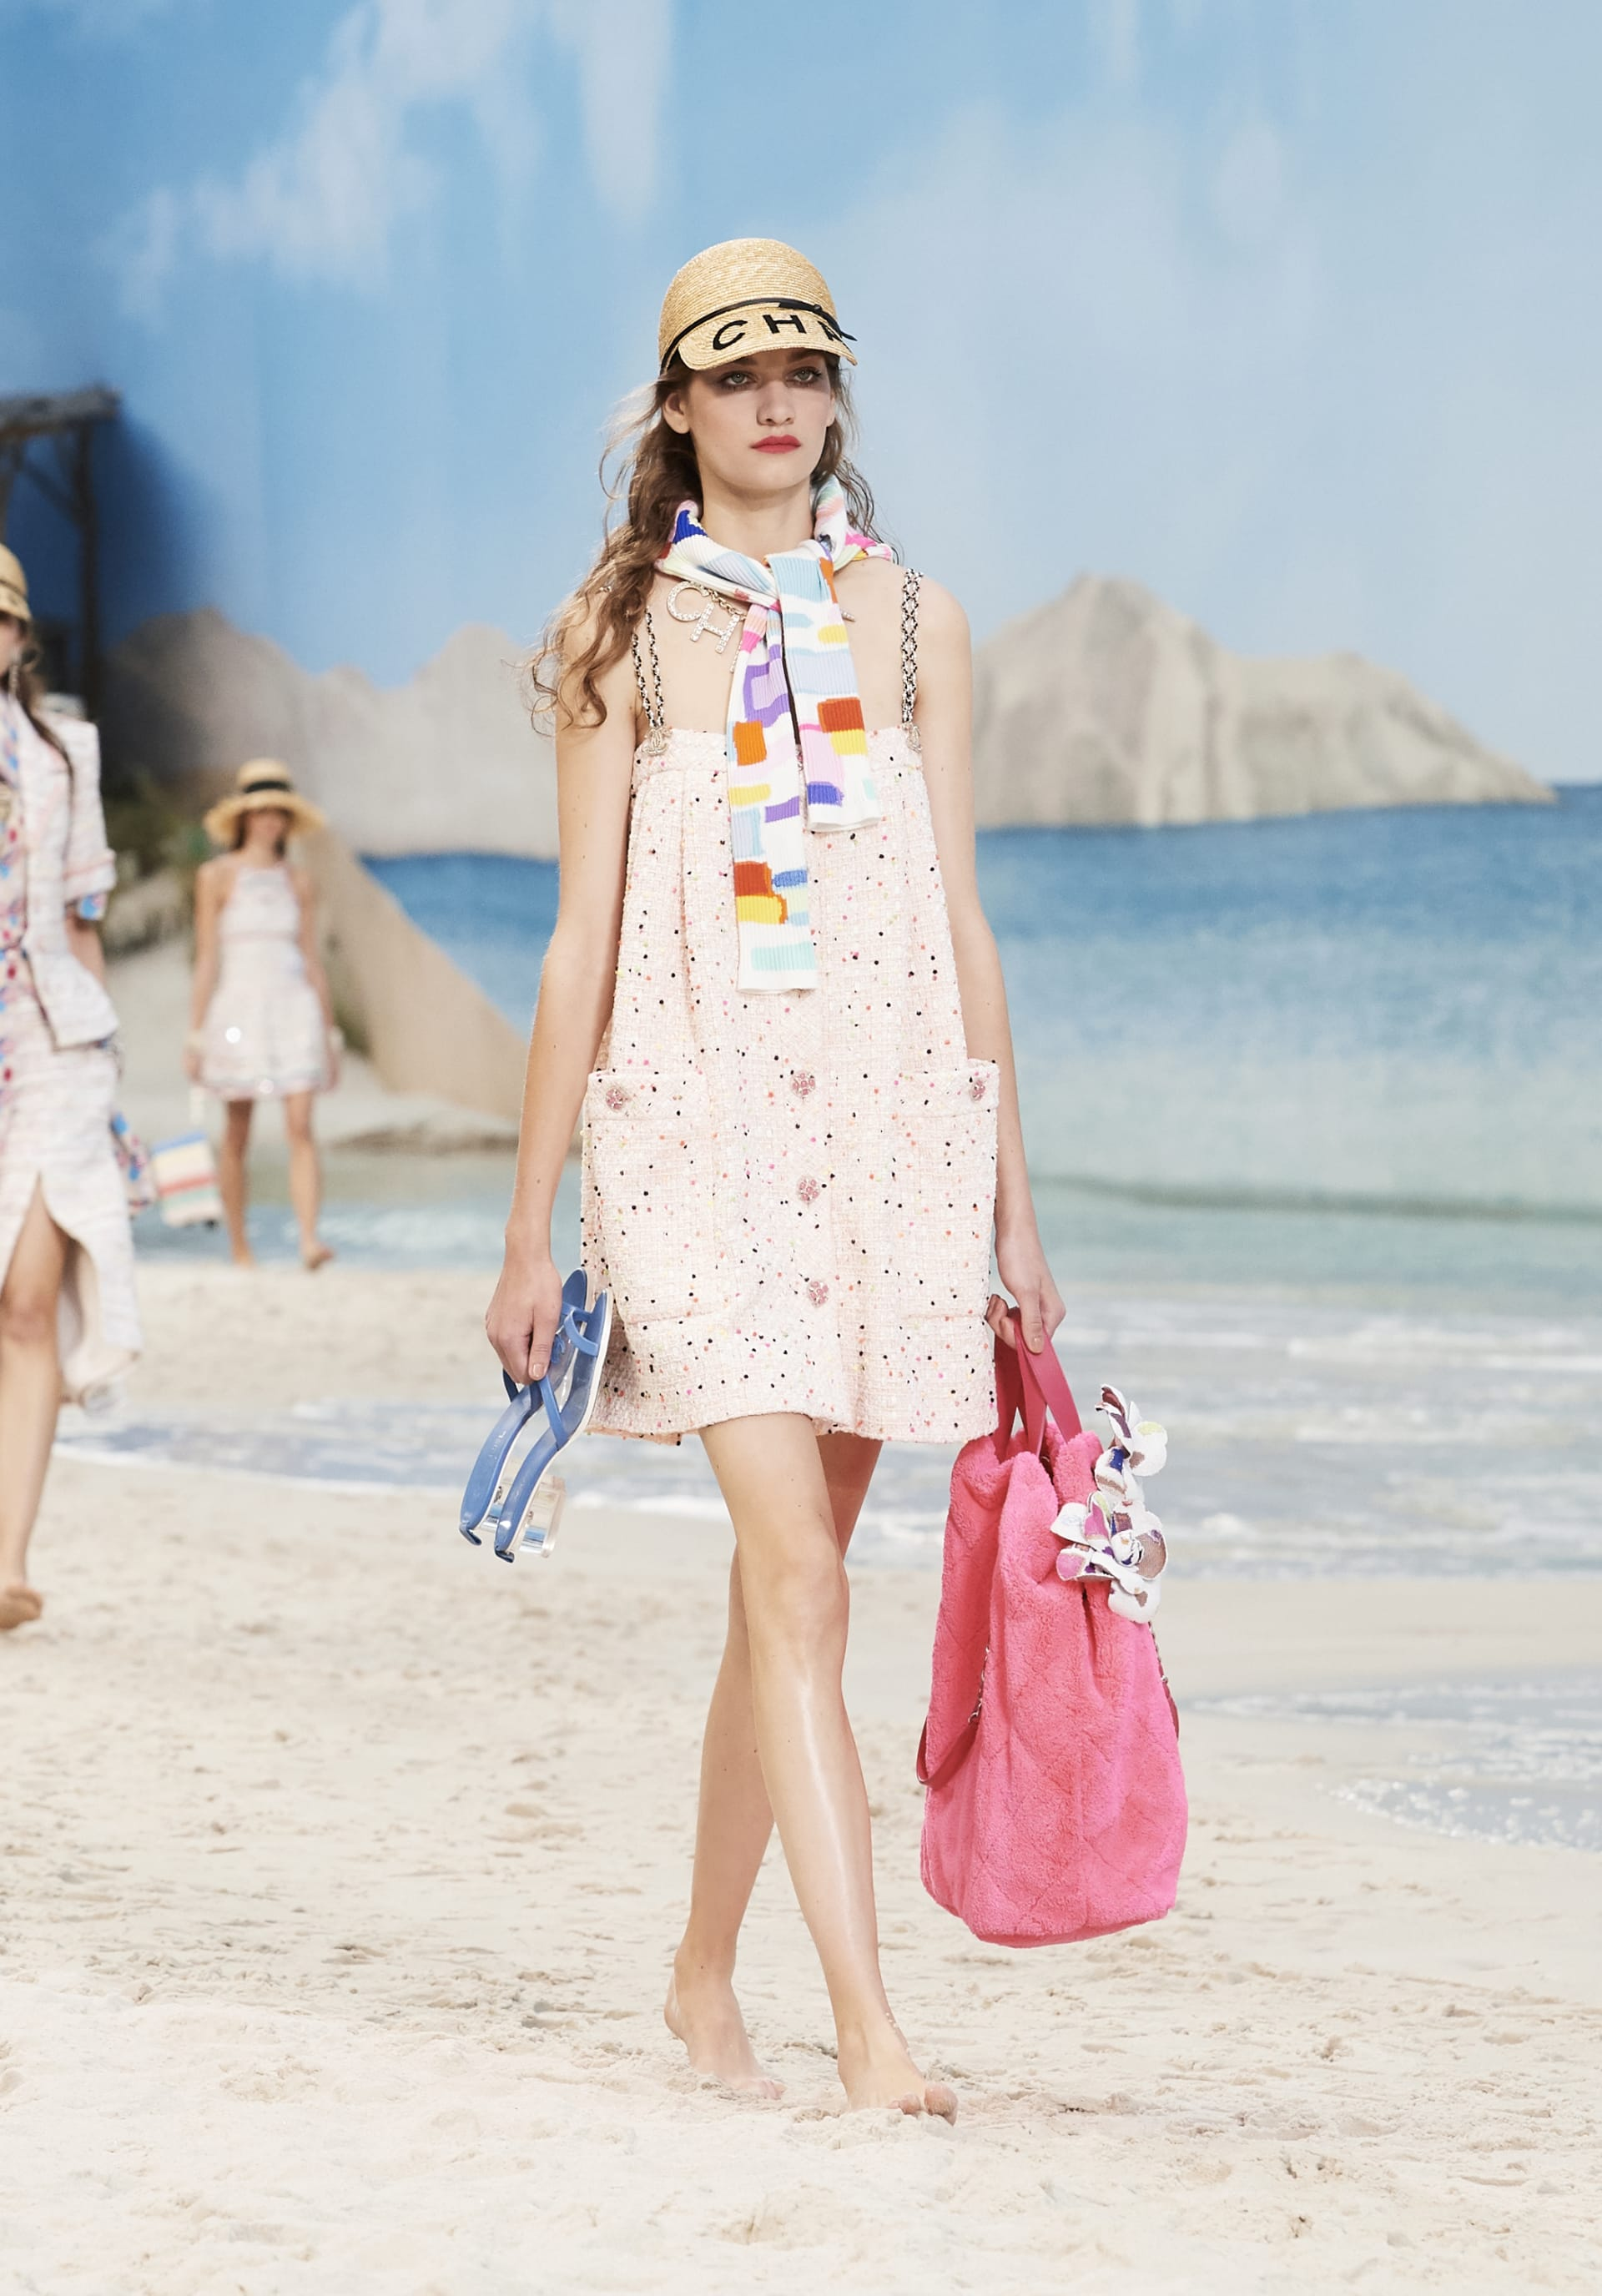 View 1 - Look 25 - Spring-Summer 2019